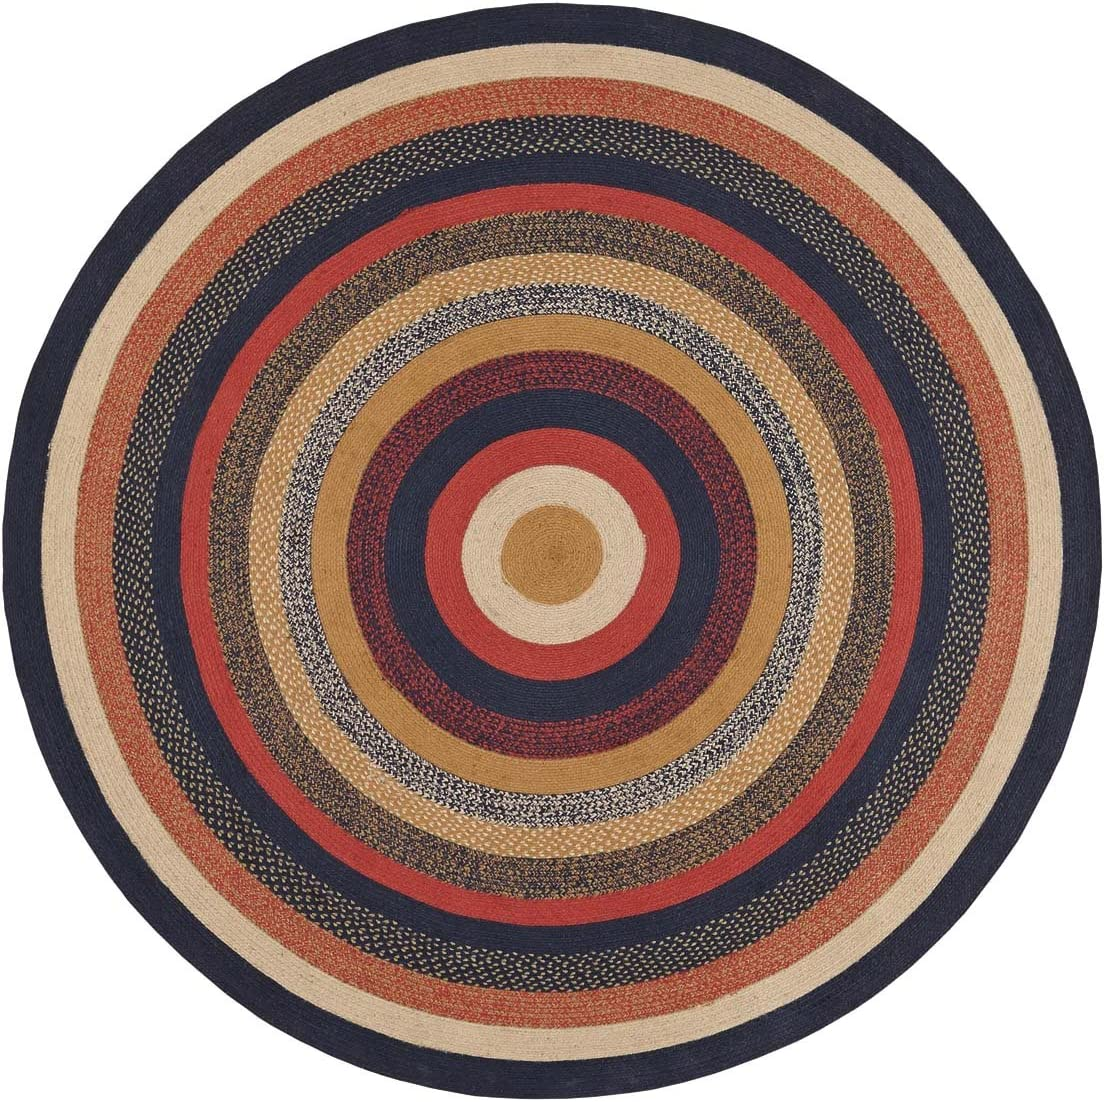 VHC Brands 27501 Primitive Flooring-Stratton Blue Round Jute Rug, 8 Diameter, Navy